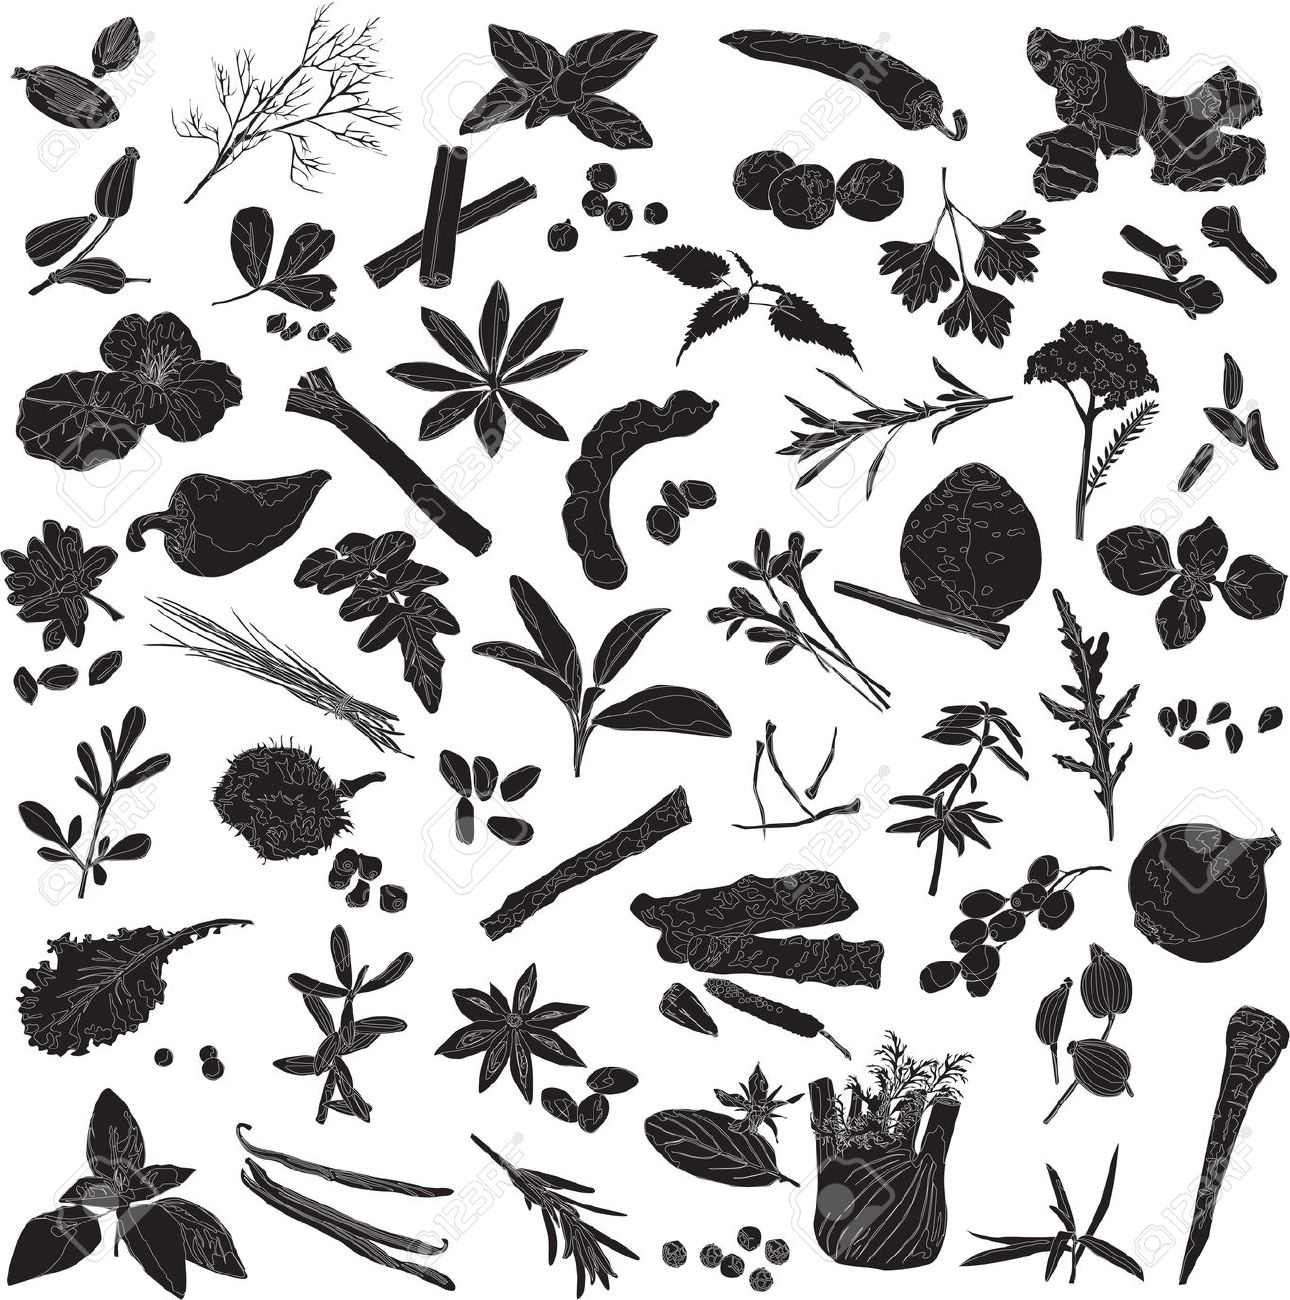 Spices clipart black and white & HERBS Commodities SPICES